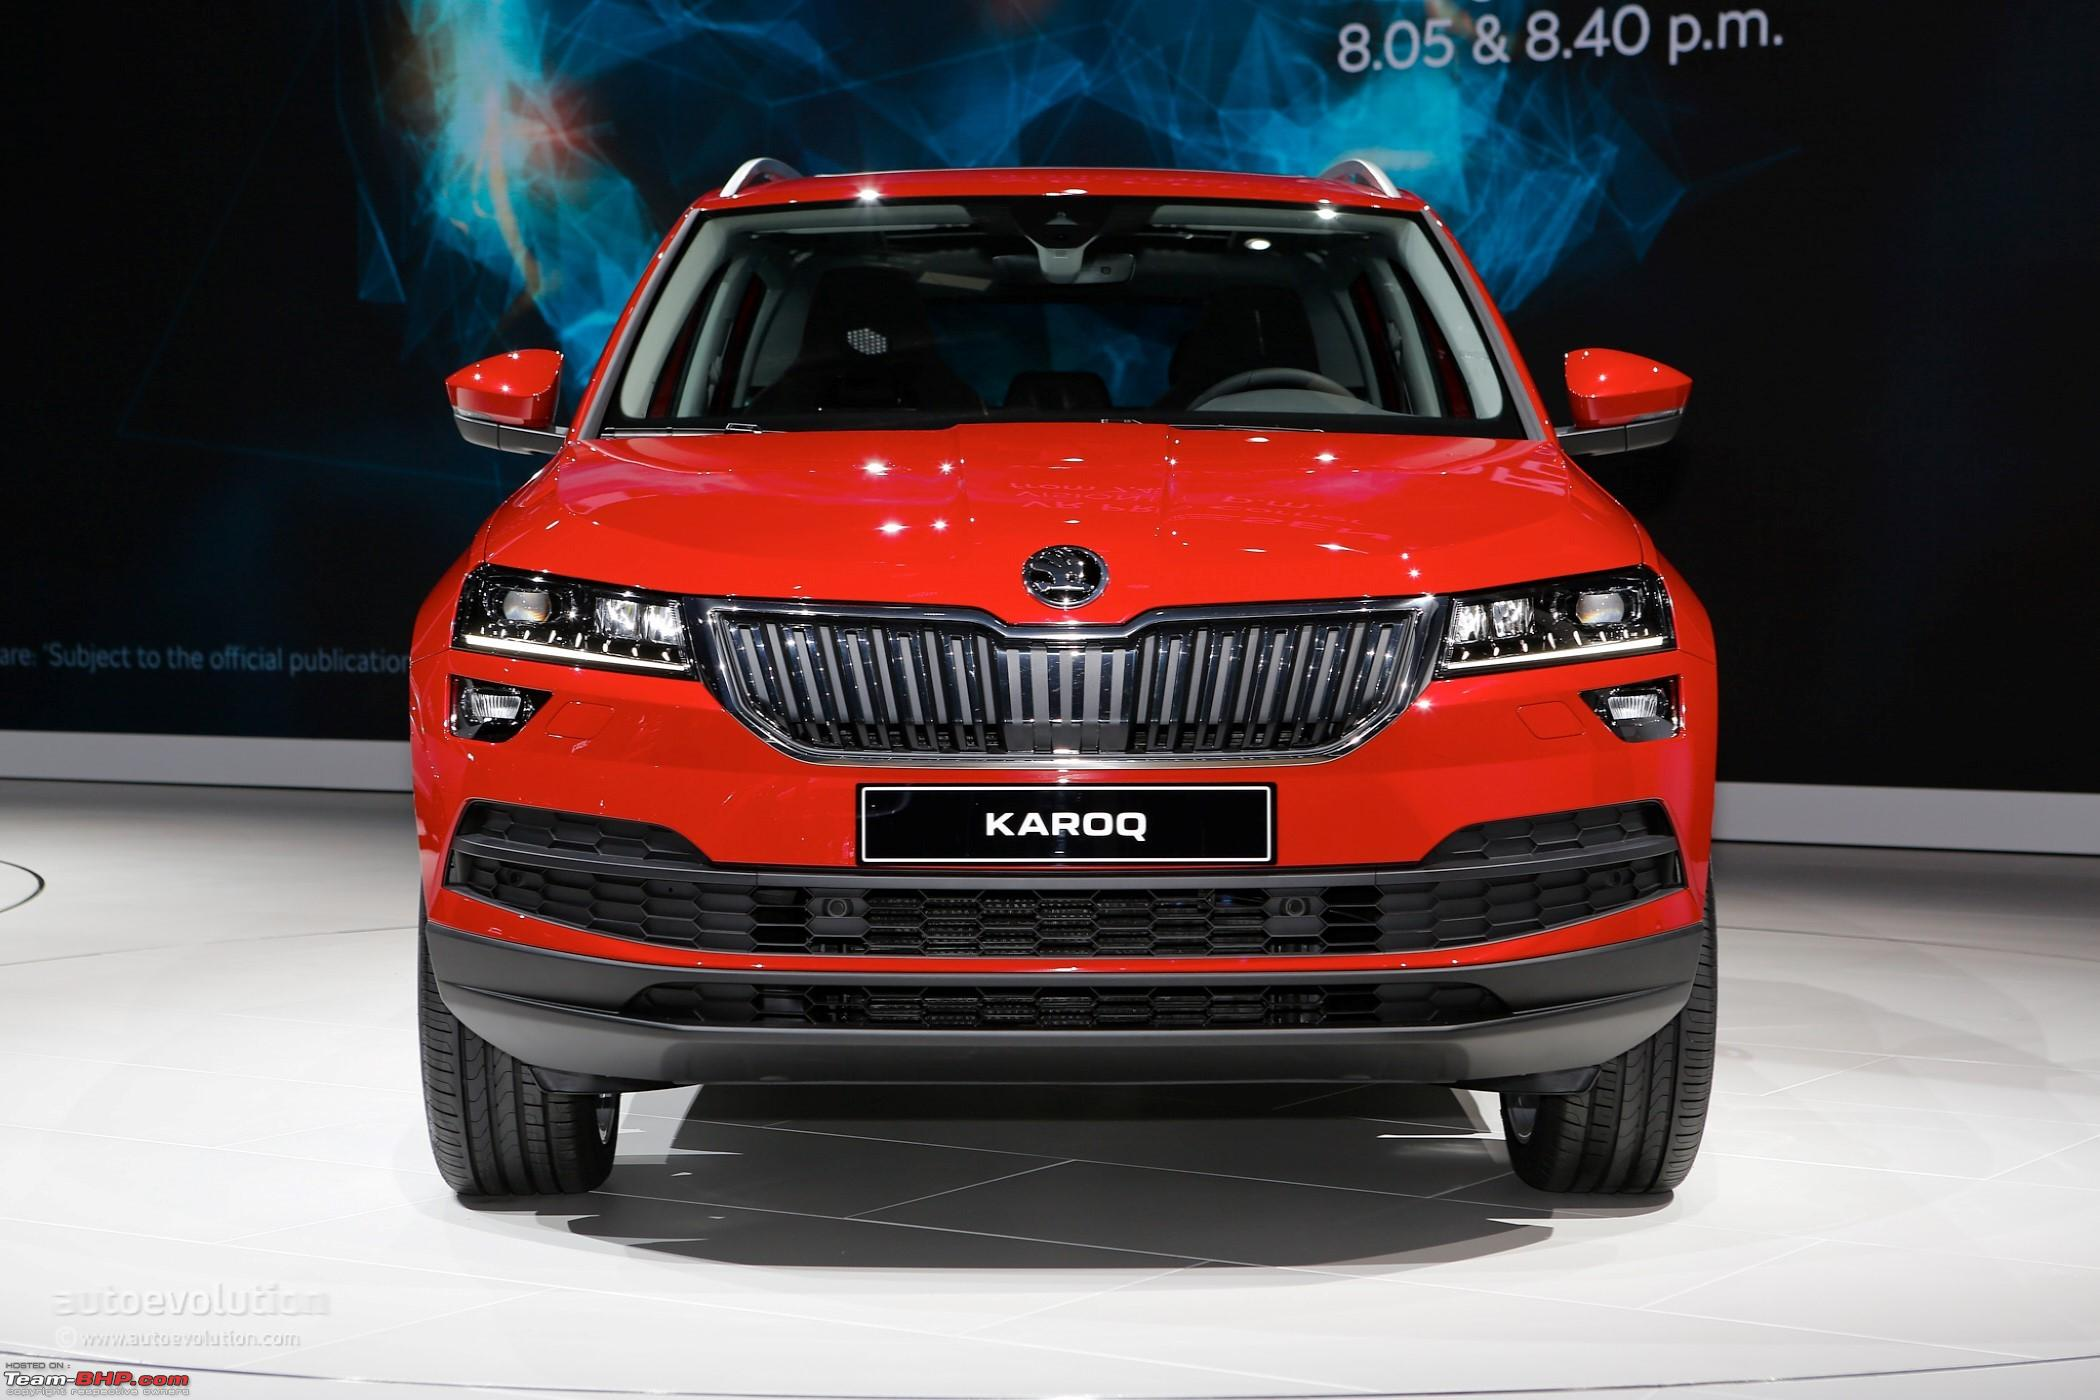 next gen skoda yeti coming in 2018 edit named karoq page 6 team bhp. Black Bedroom Furniture Sets. Home Design Ideas